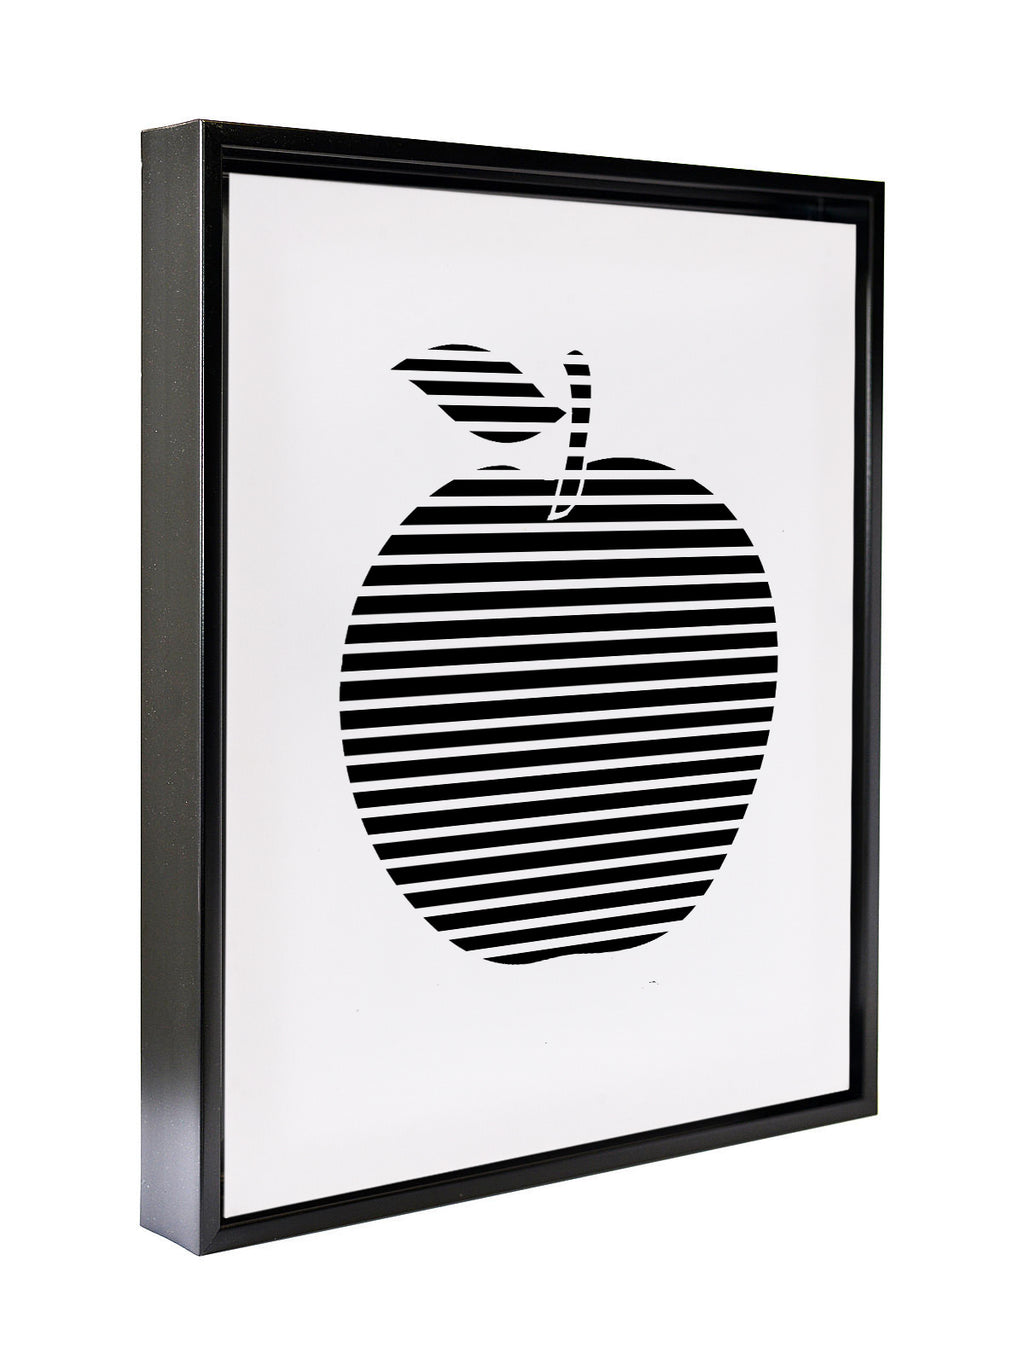 APPLE STRIPES Premium Framed Gallery Wrap By Honeytree Prints